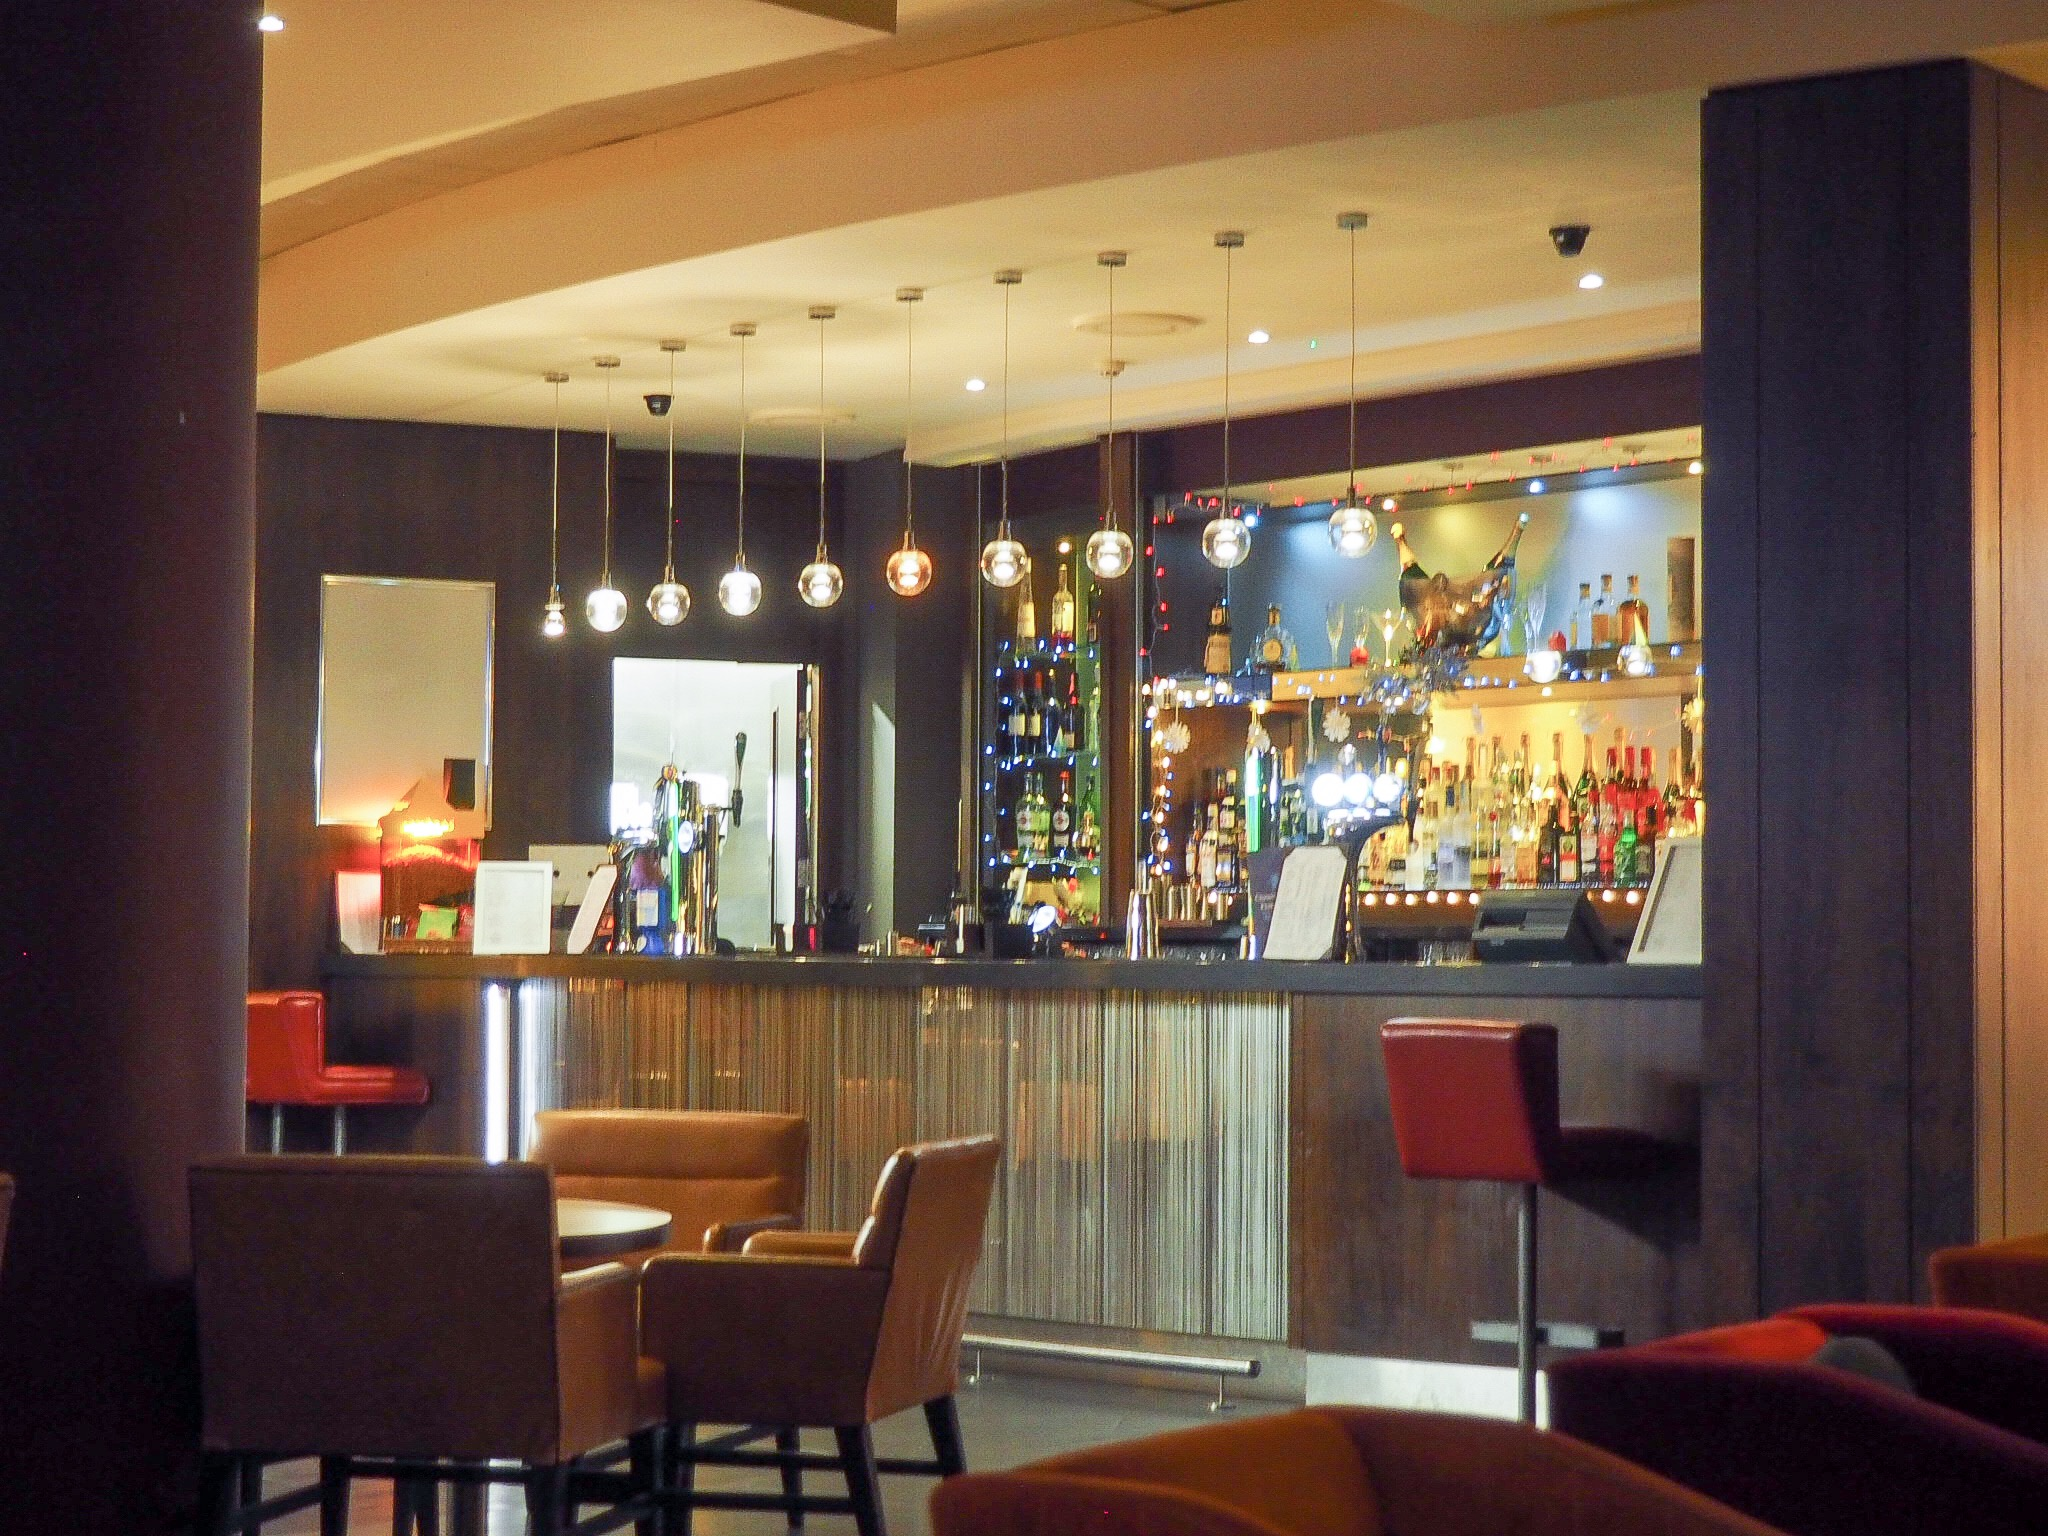 Crowne Plaza Resort Colchester bars